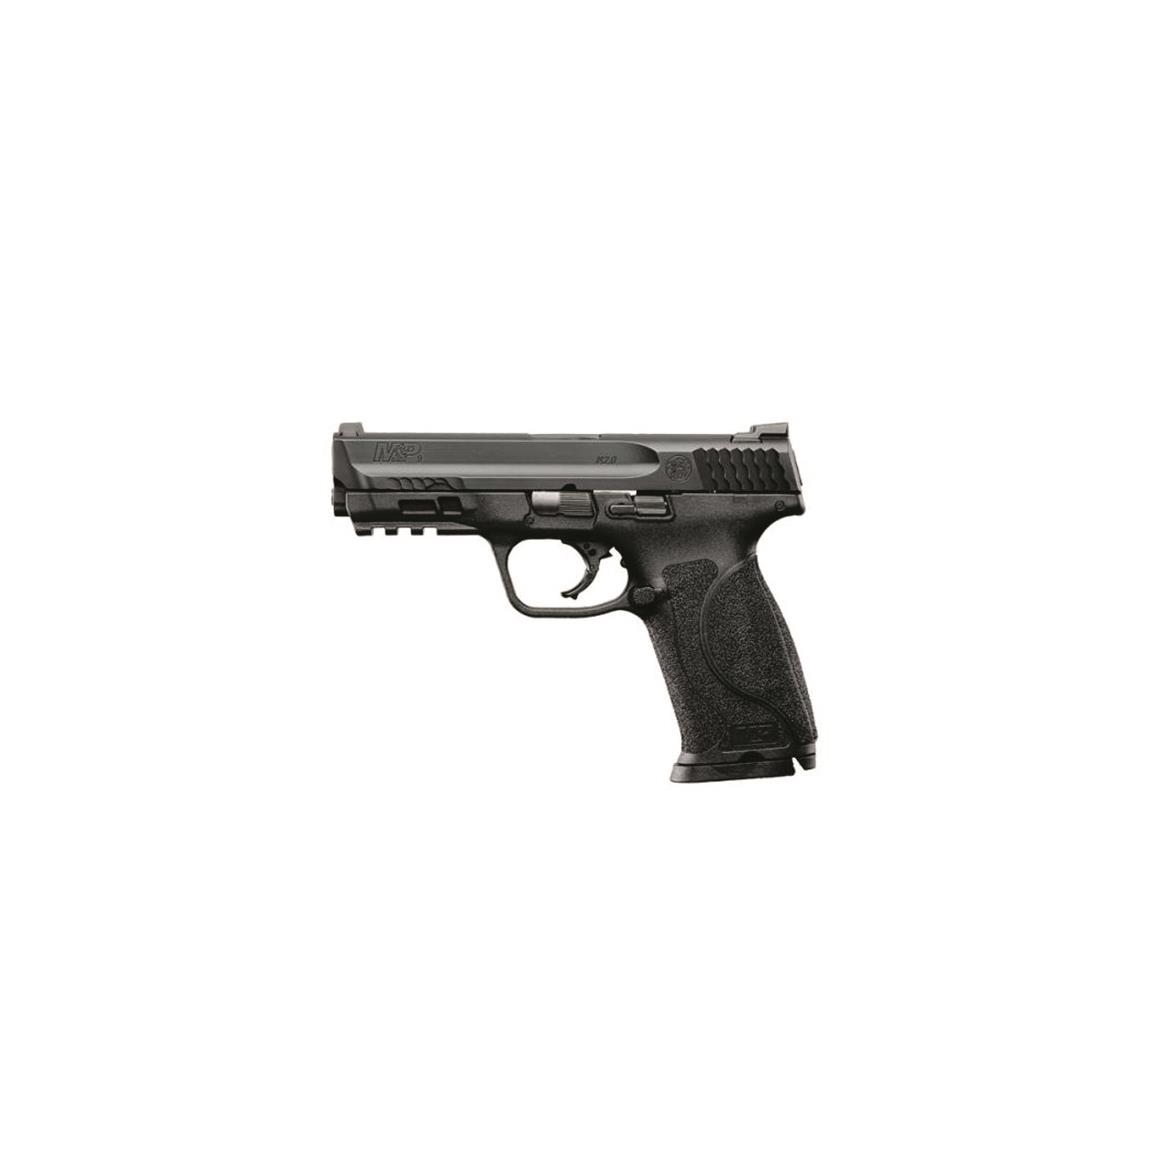 "Smith & Wesson M&P9 M2.0, Semi-Automatic, 9mm, 4.25"" Barrel, No Safety, 17+1 Rounds"